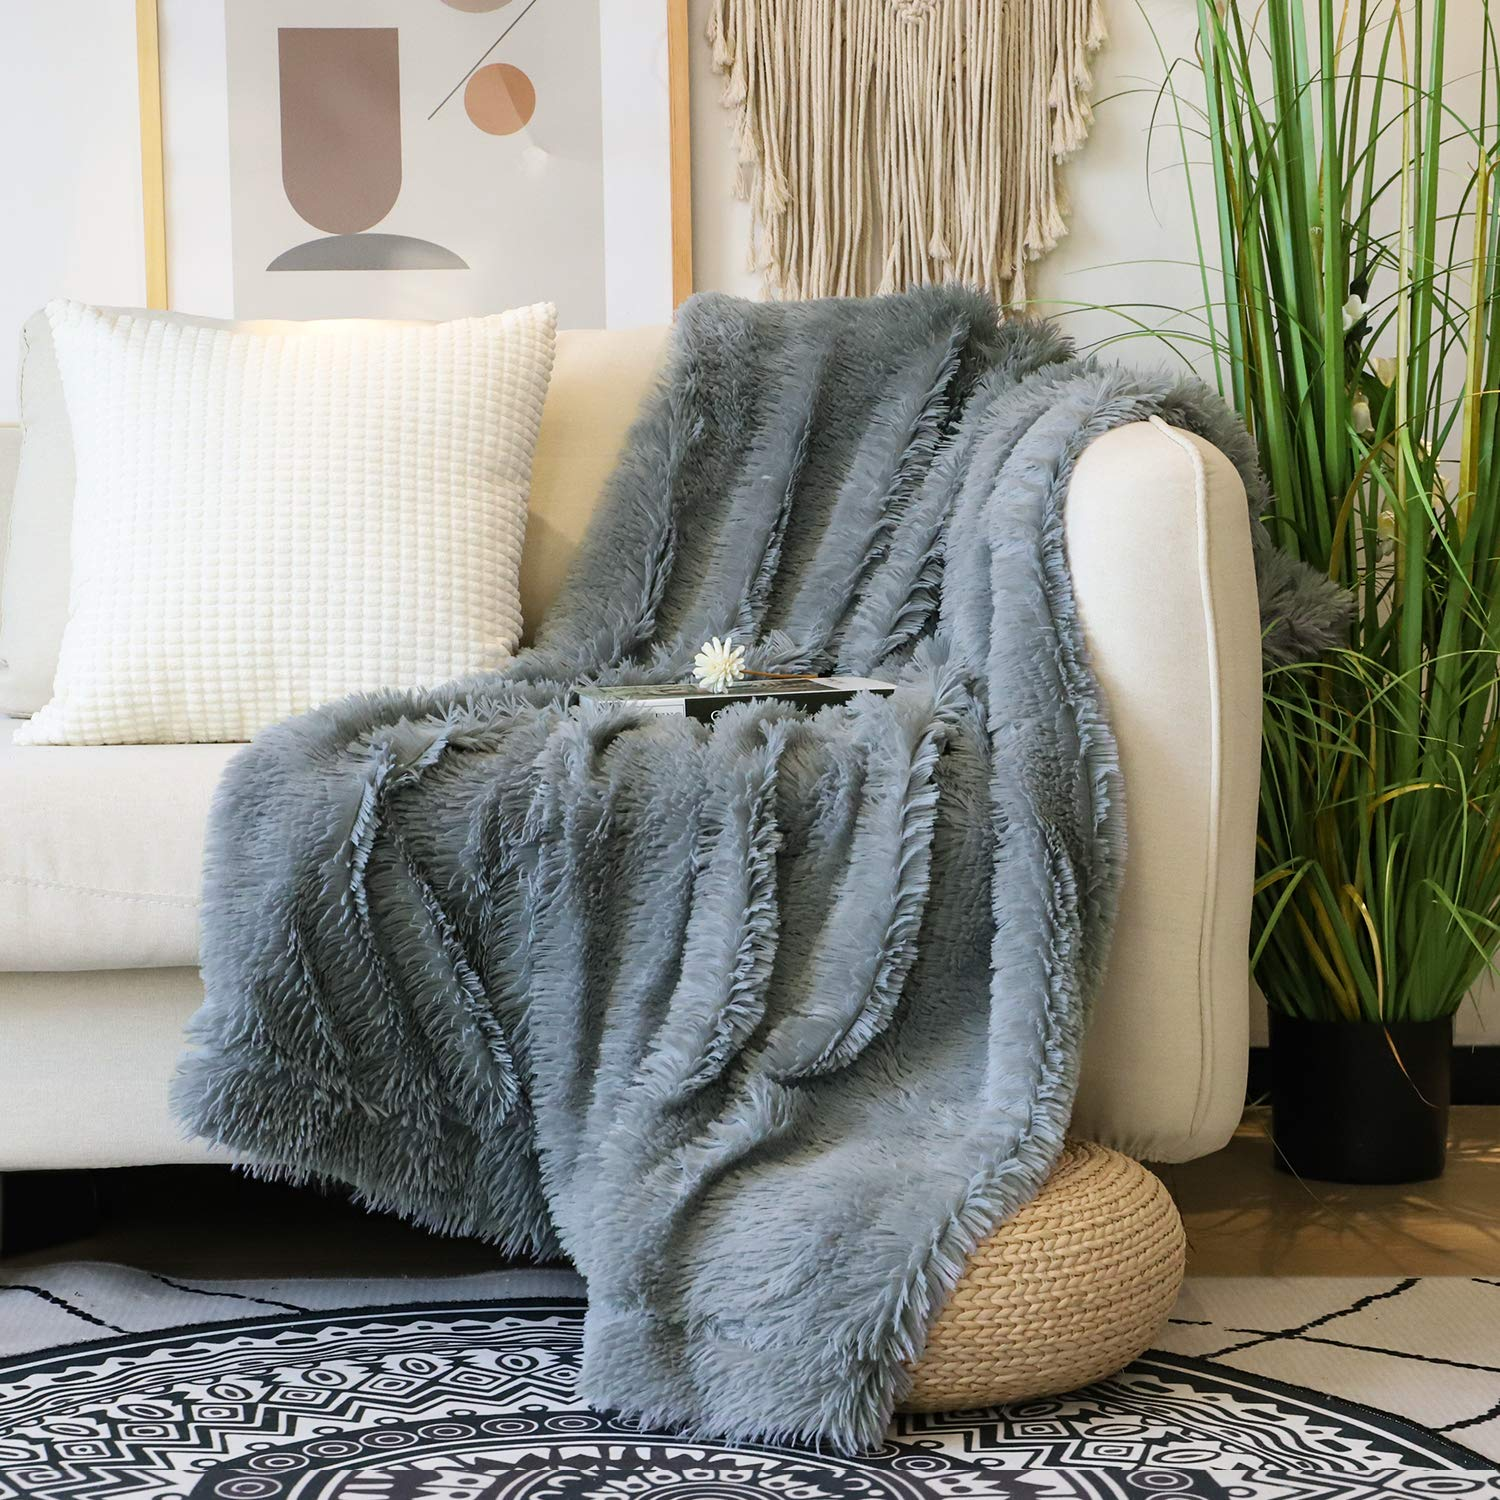 "Decorative Extra Soft Faux Fur Throw Blanket 50"" x 60"",Solid Lightweight Fuzzy Reversible Long Hair Shaggy Blanket,Fluffy Cozy Plush Mink Fleece Microfiber Fur Blanket for Couch Sofa Bed,Light Gray"